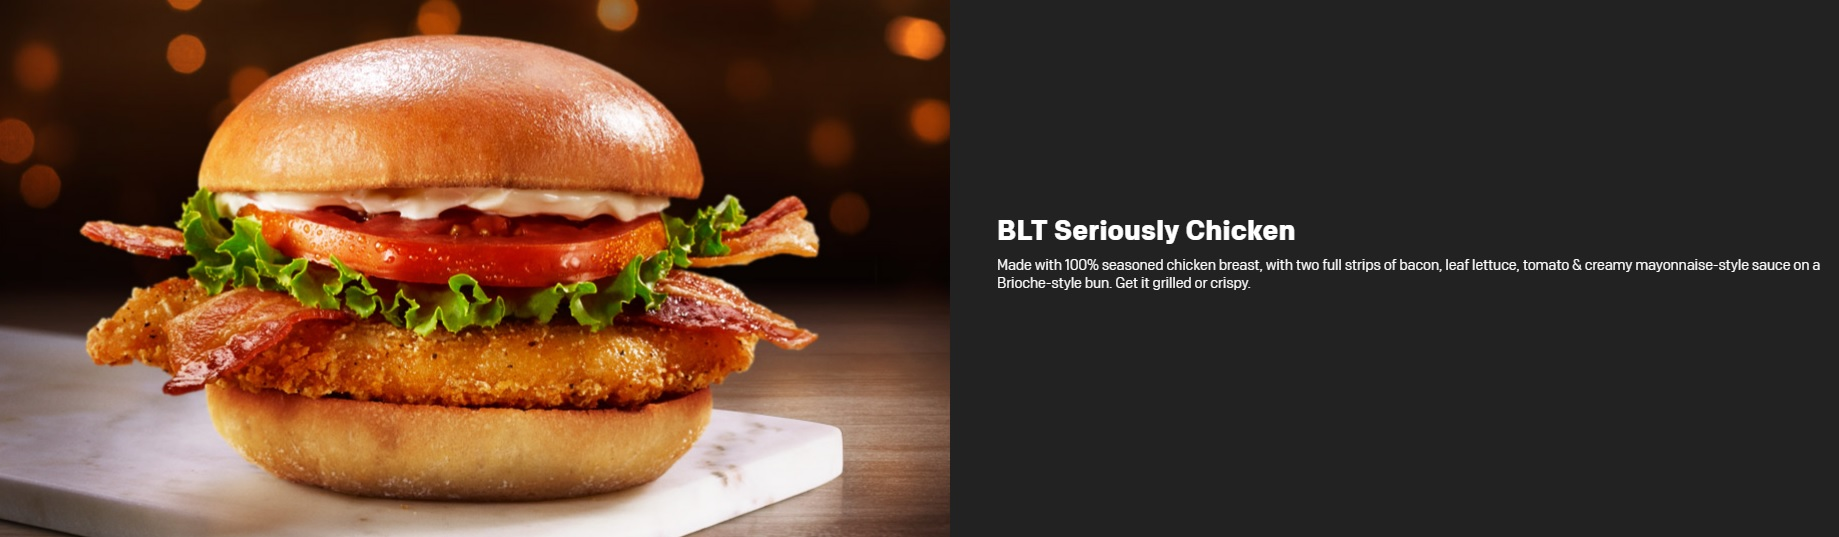 McDonald's Seriously Festive Menu - BLT Seriously Chicken